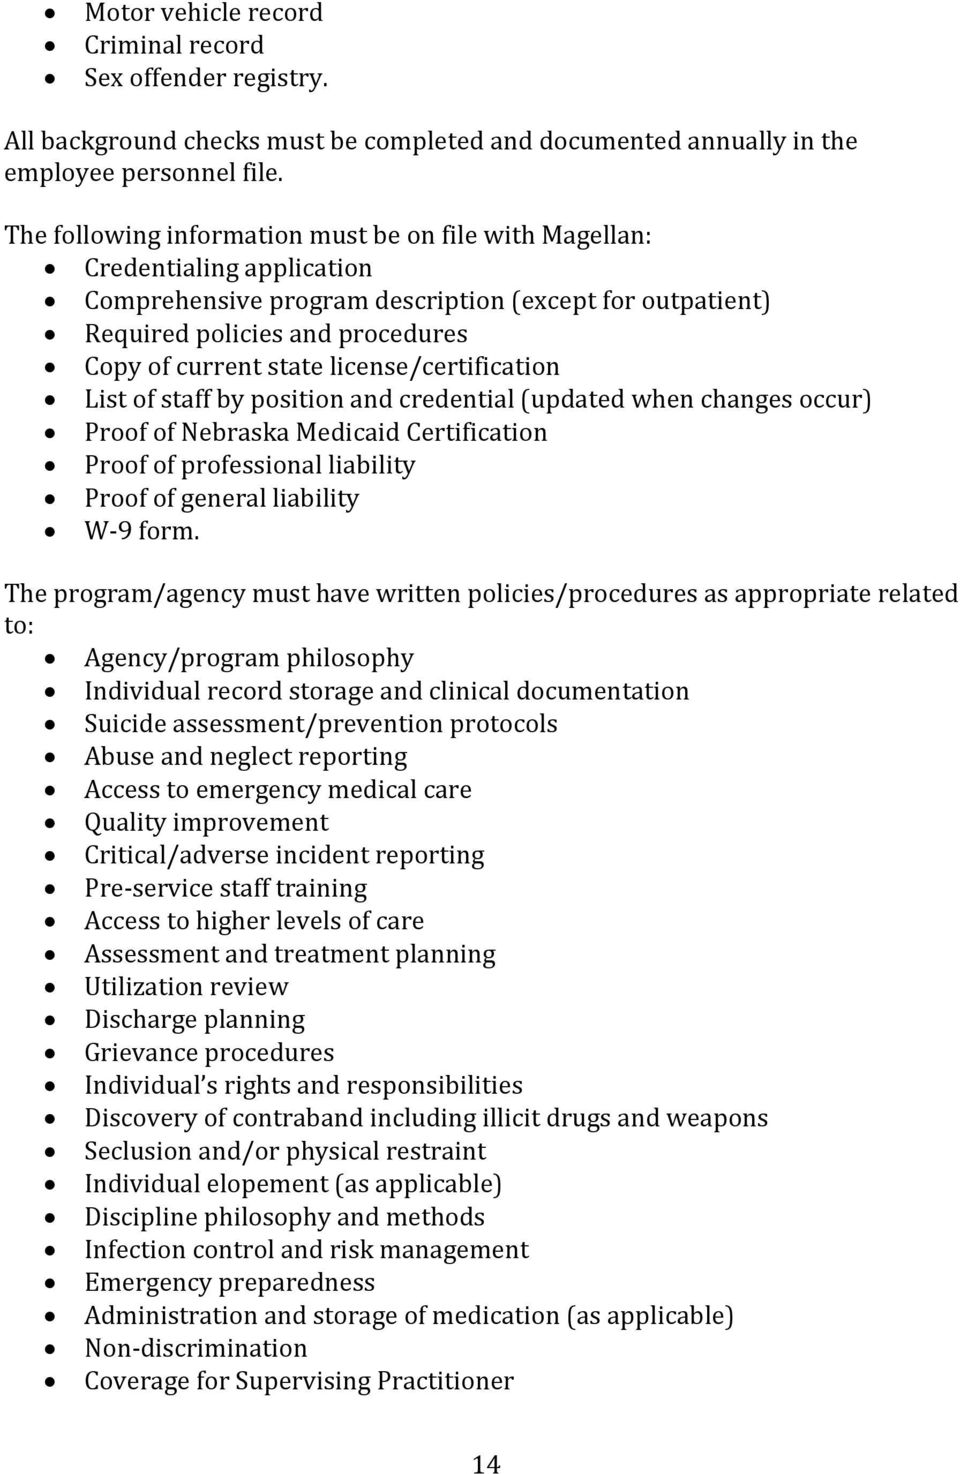 license/certification List of staff by position and credential (updated when changes occur) Proof of Nebraska Medicaid Certification Proof of professional liability Proof of general liability W-9